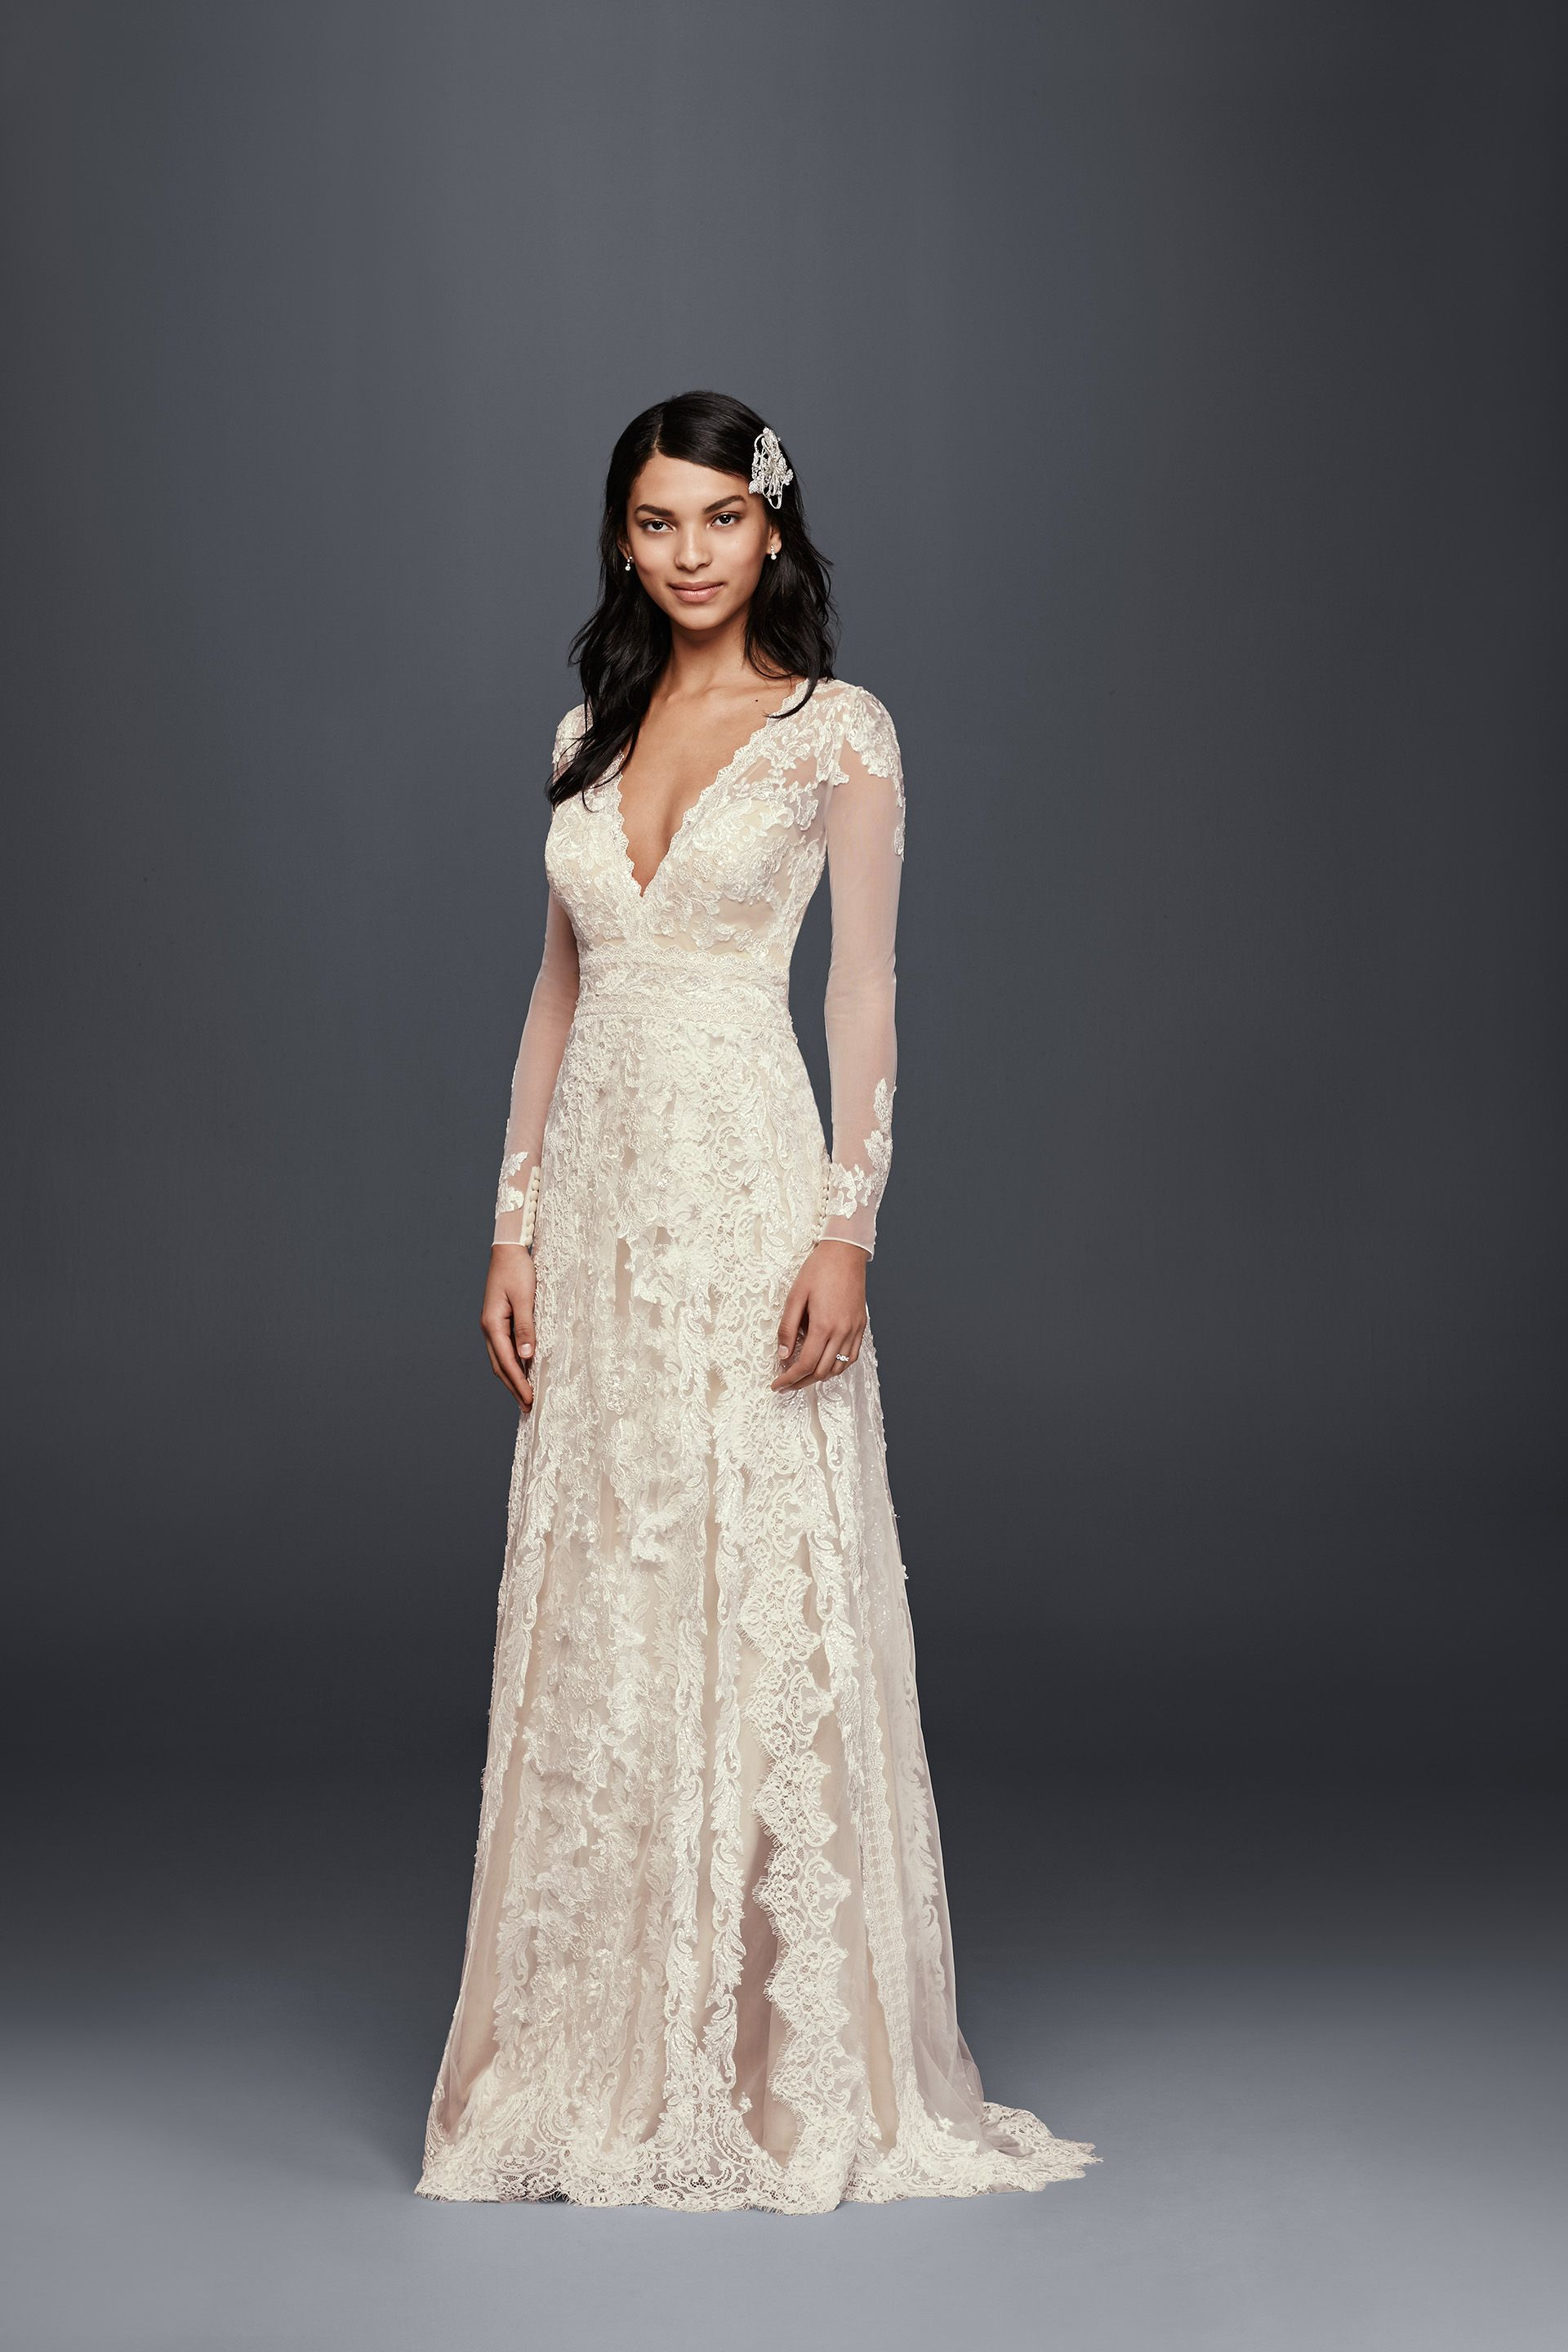 Beautiful bohemian inspired wedding dress | A-Line Long Sleeve ...